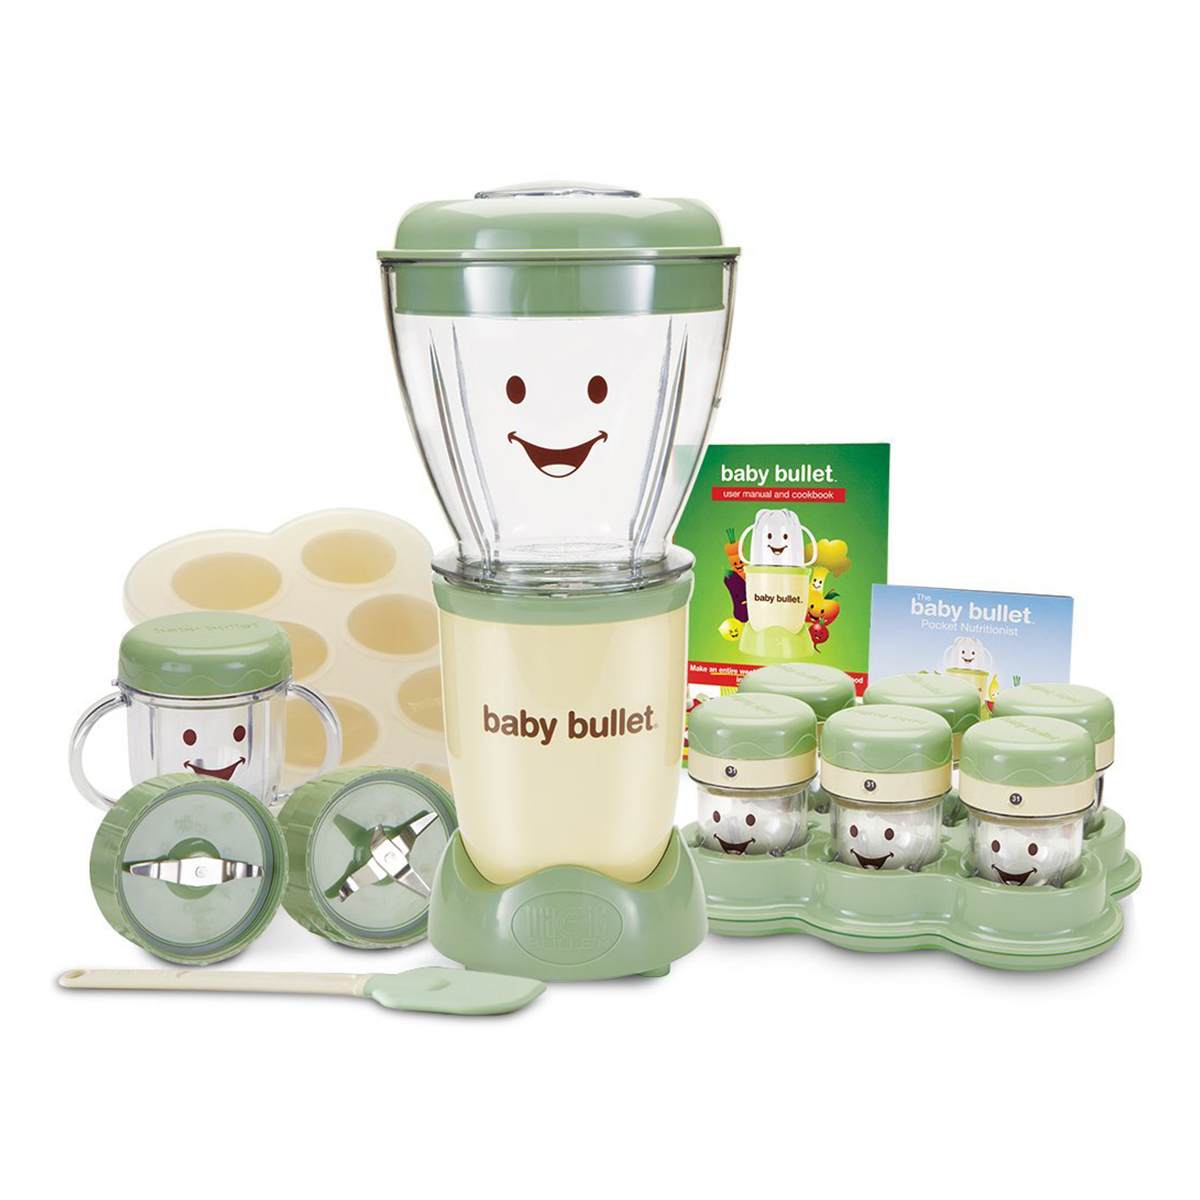 Magic Bullet Baby Food Maker